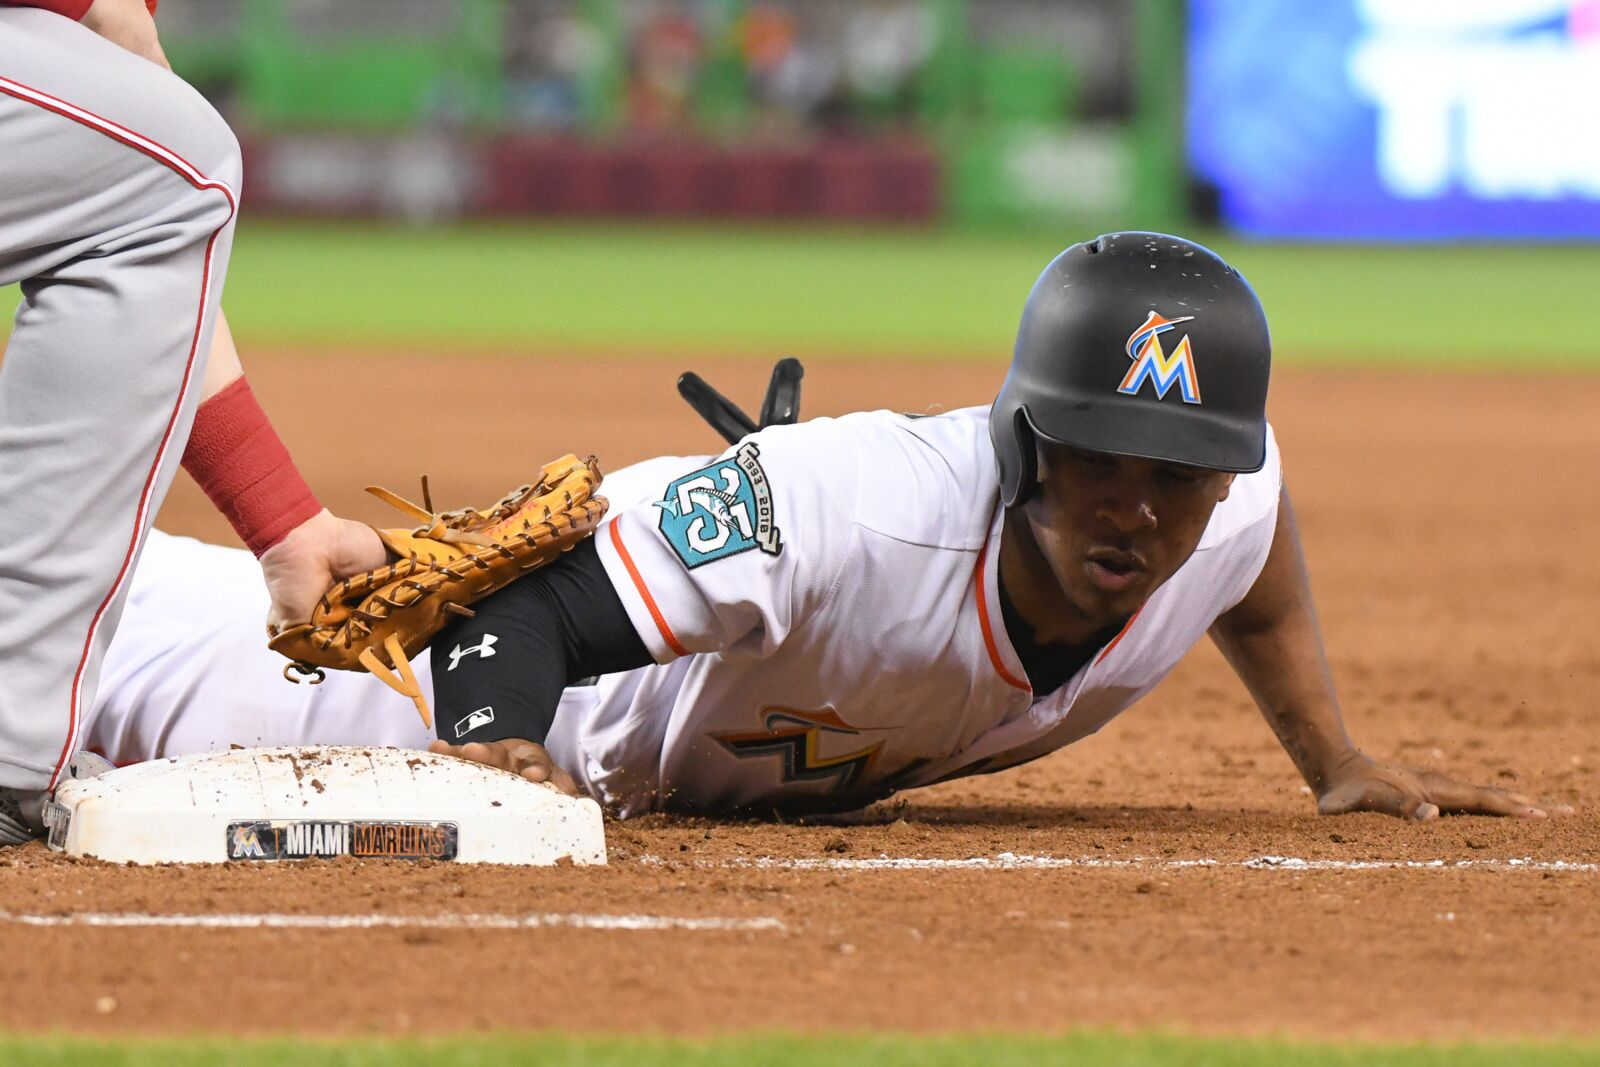 Miami Marlins: The Player with the most to lose in Spring Training